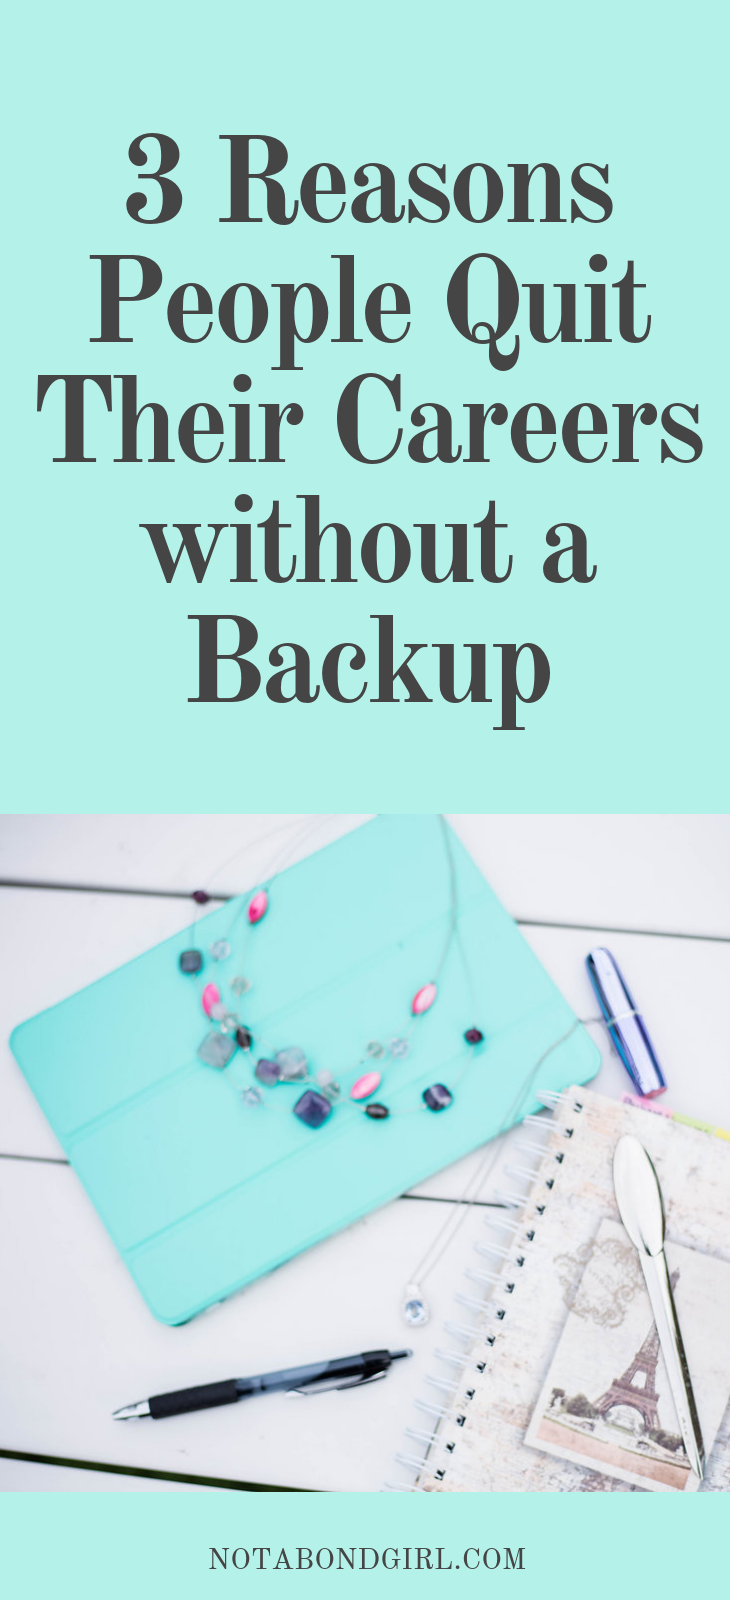 3 Reasons People Quit Their Careers without a Backup